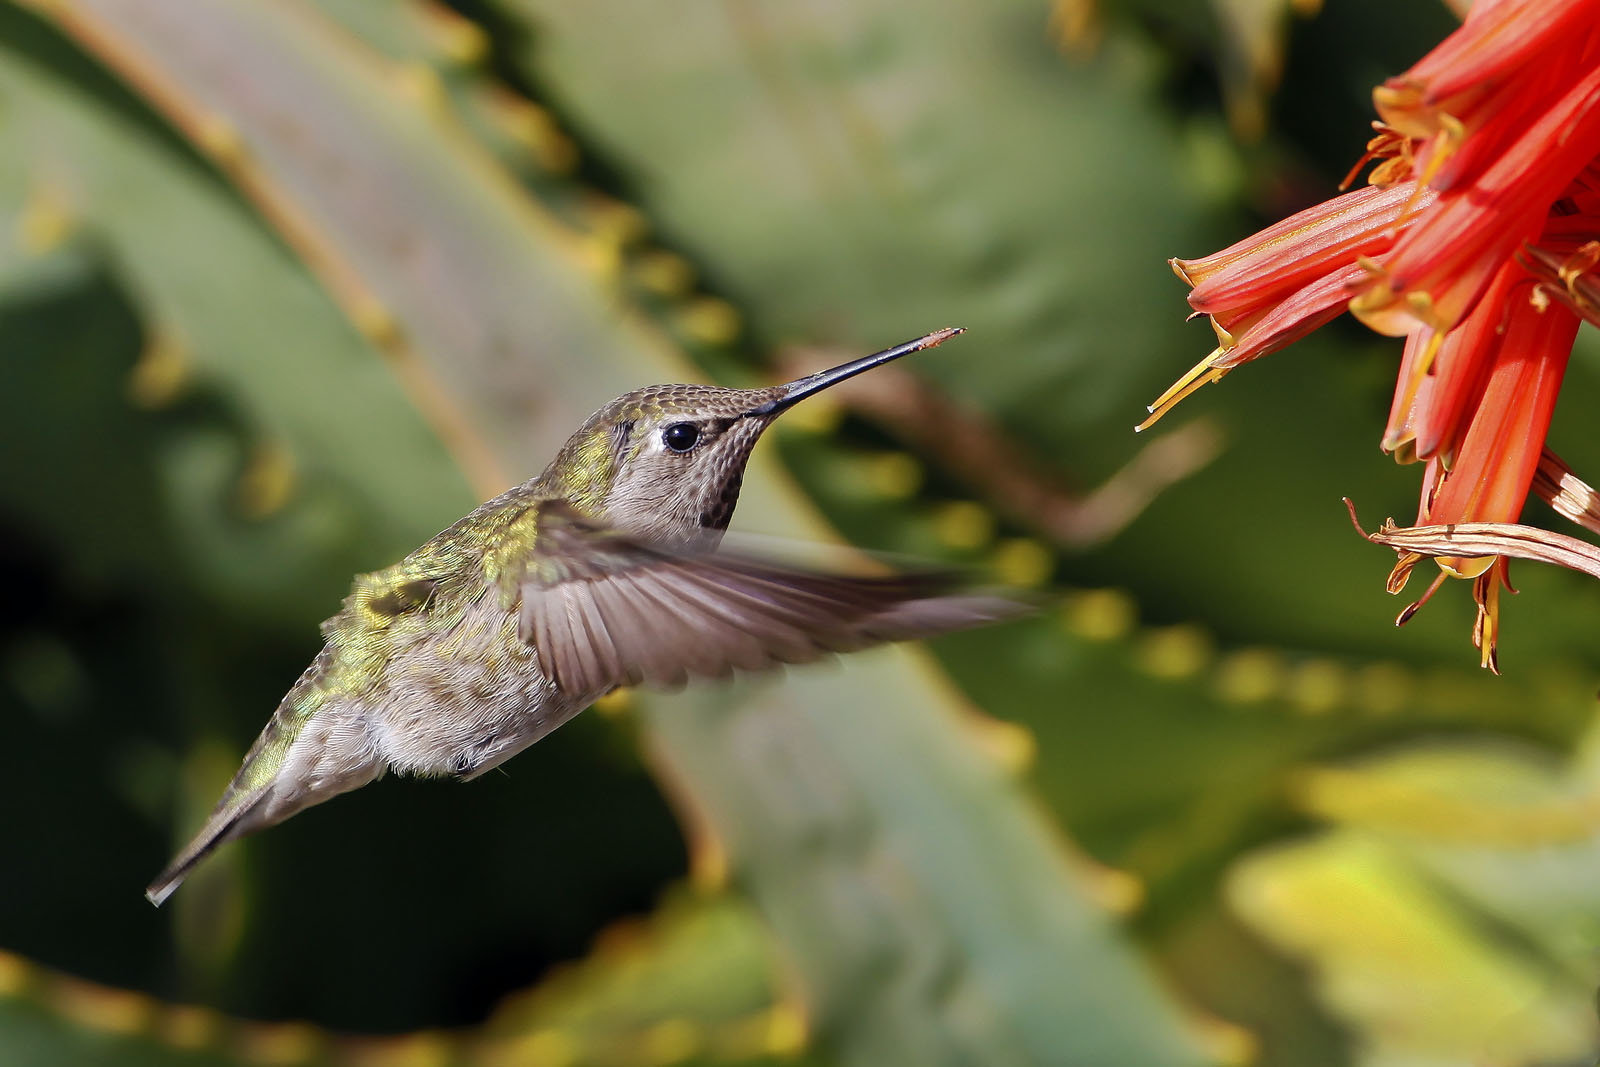 Female Anna's Hummingbird (Calypte anna) with pollen on bill from Aloe vera plant